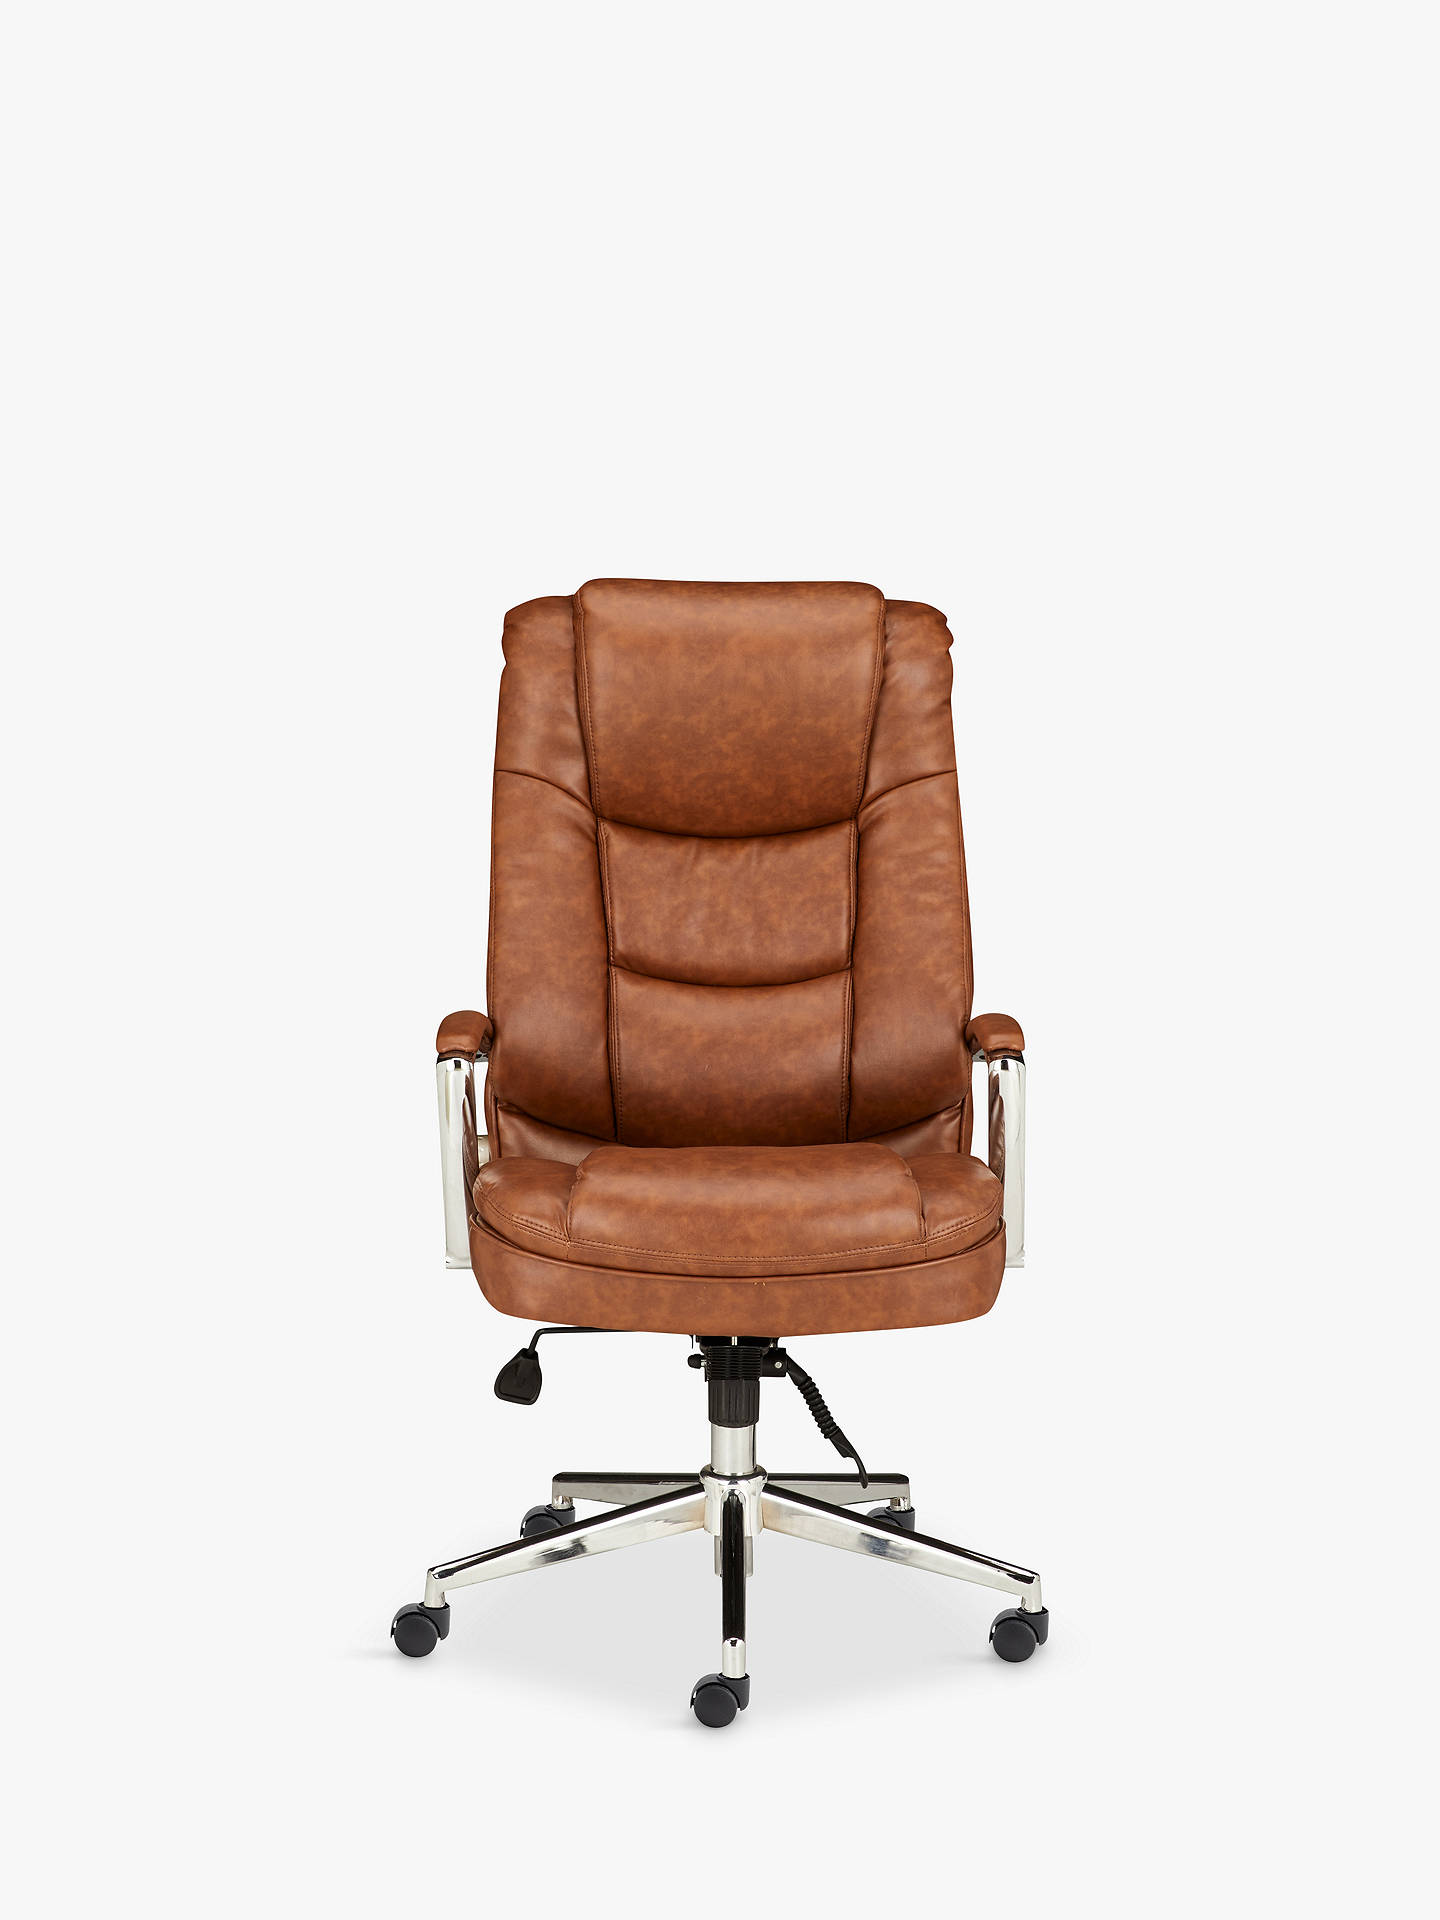 BuyJohn Lewis & Partners Abraham Office Chair, Tan Online at johnlewis.com